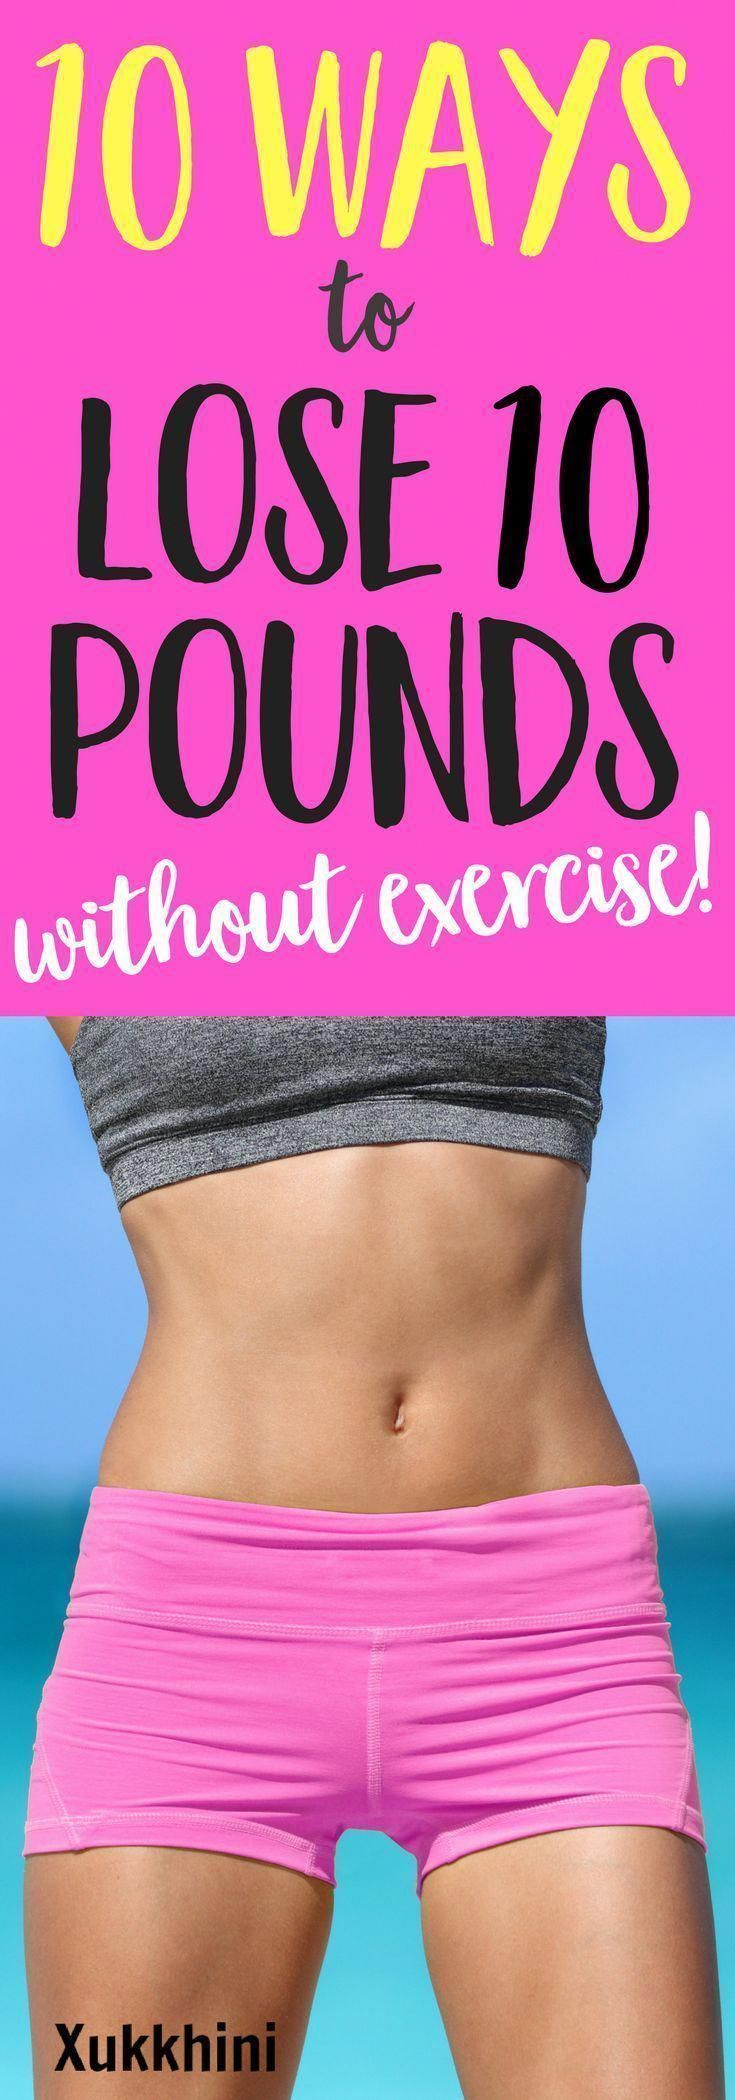 Quick weight loss tips overnight #weightlossprograms :) | super easy ways to lose weight#healthylifestyle #weightlosstransformation